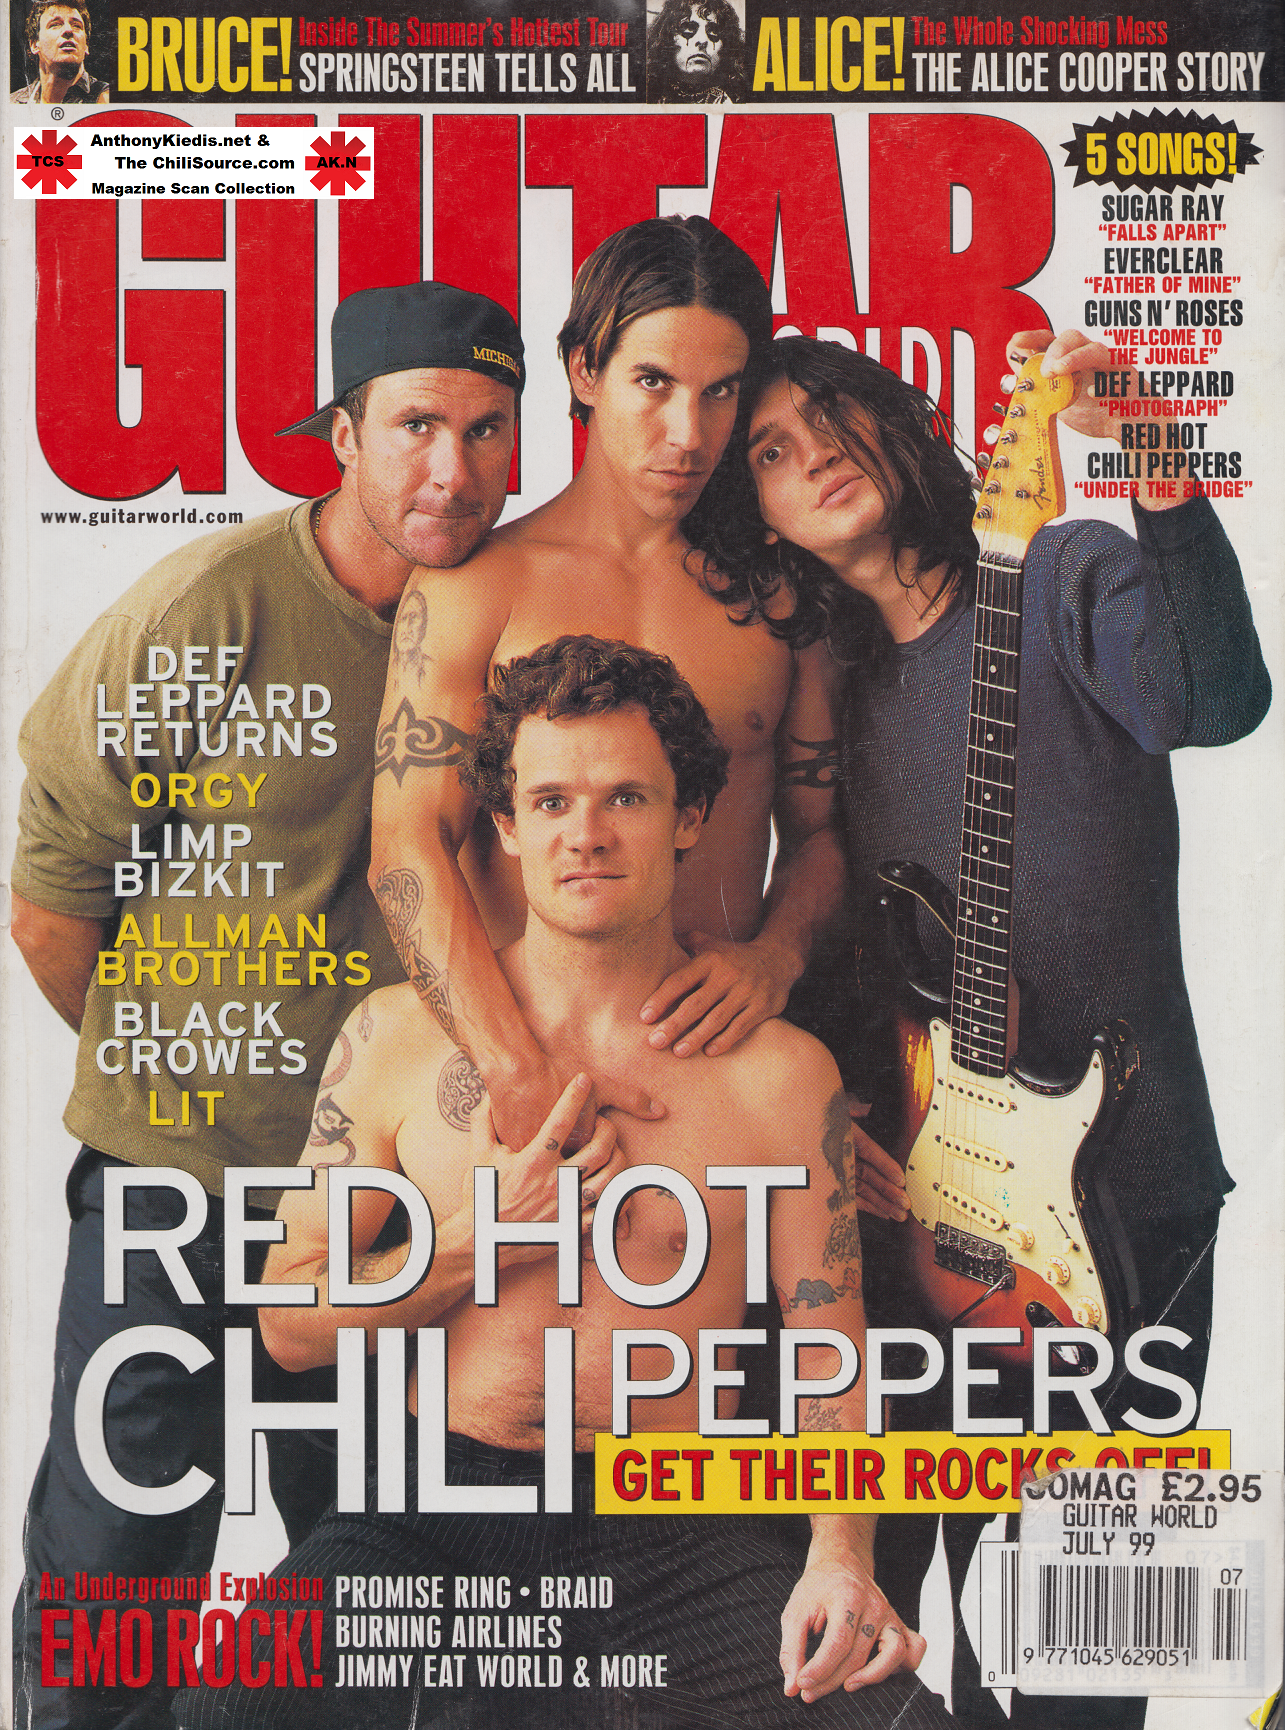 red hot chili peppers are gay